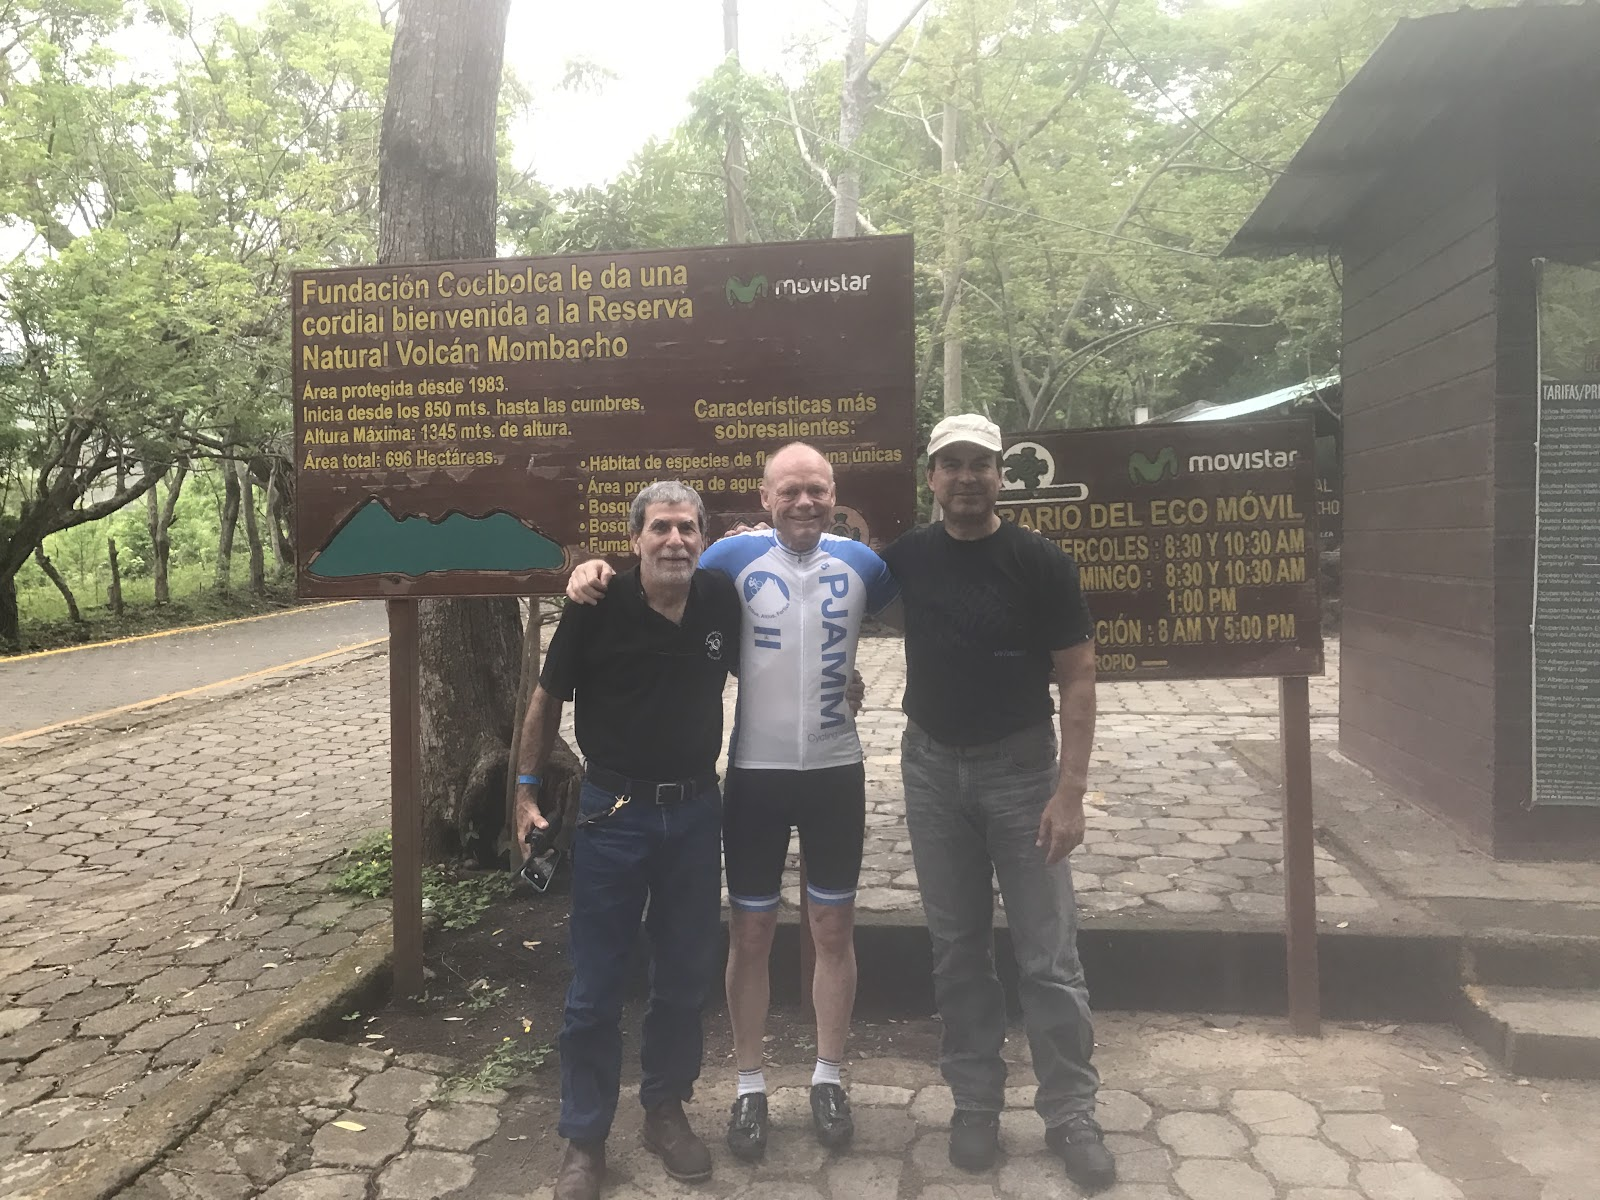 Biking up Mombacho Volcano - with the director of the preserve at bus stop, park sign